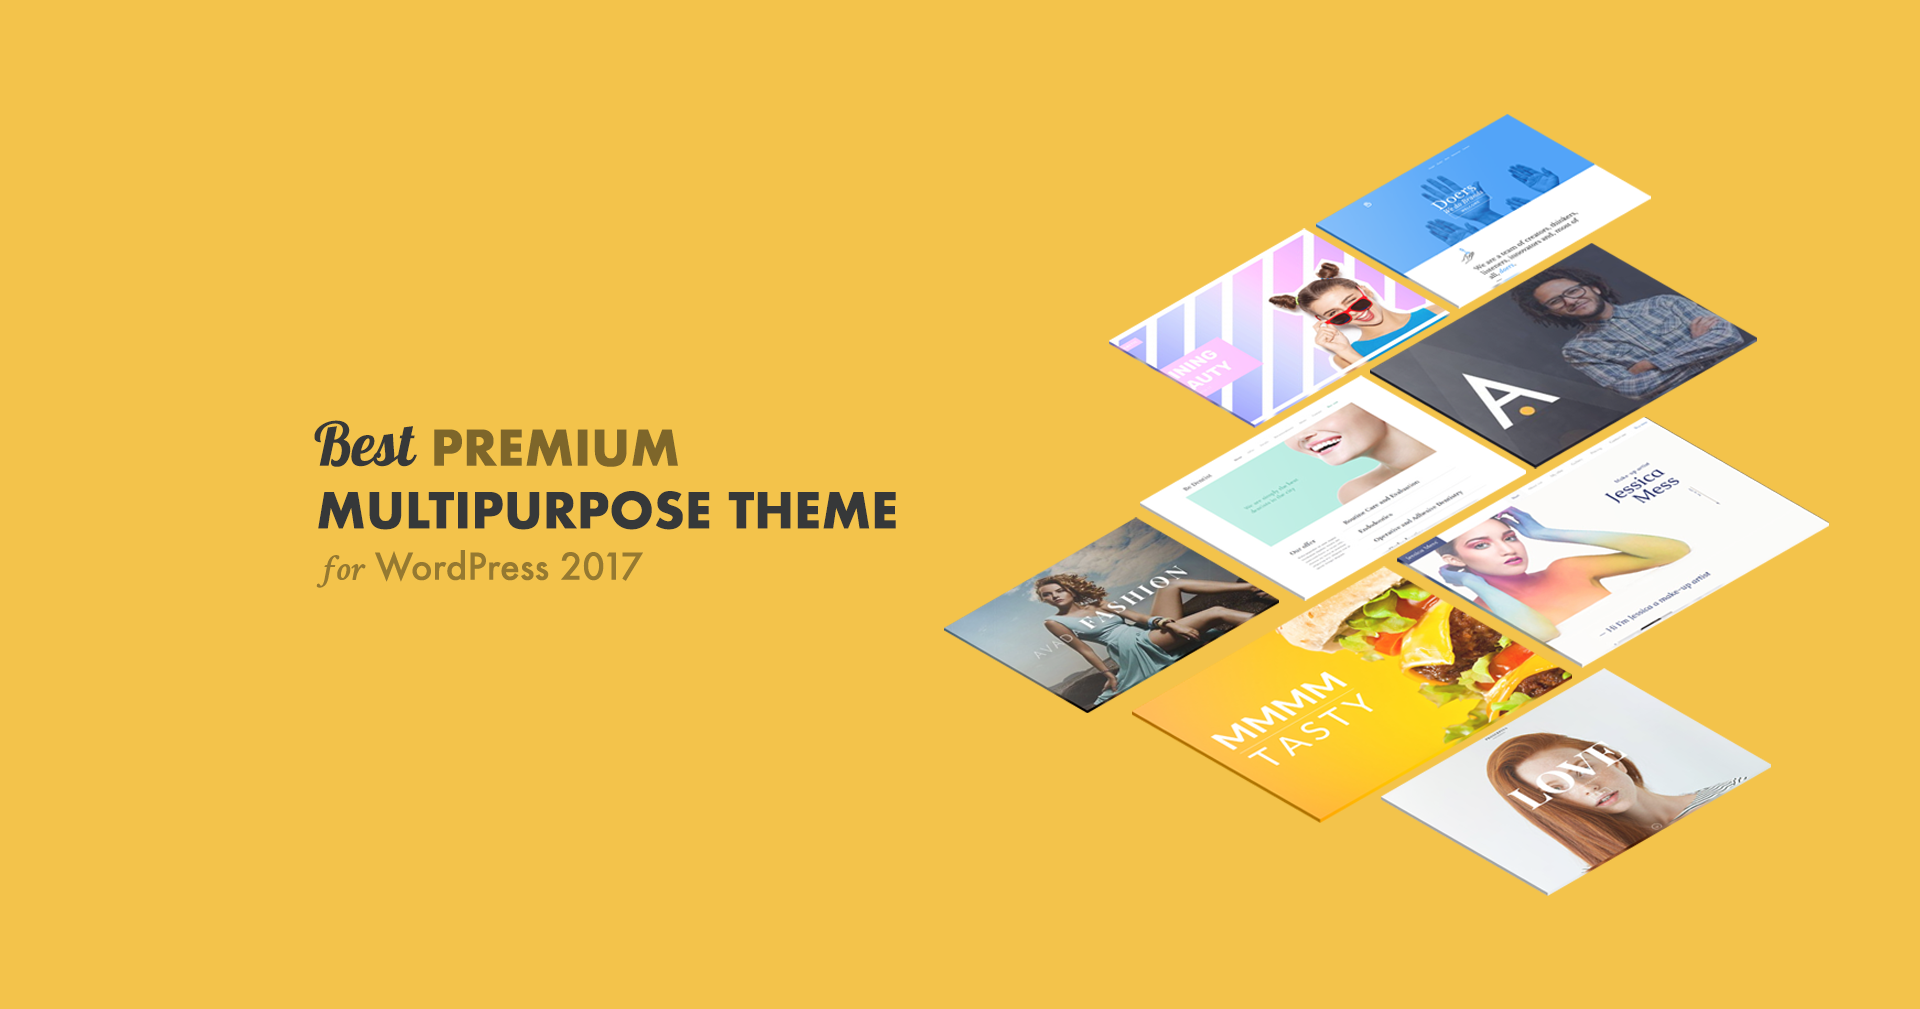 5 Best Premium Multipurpose Theme for WordPress 2017